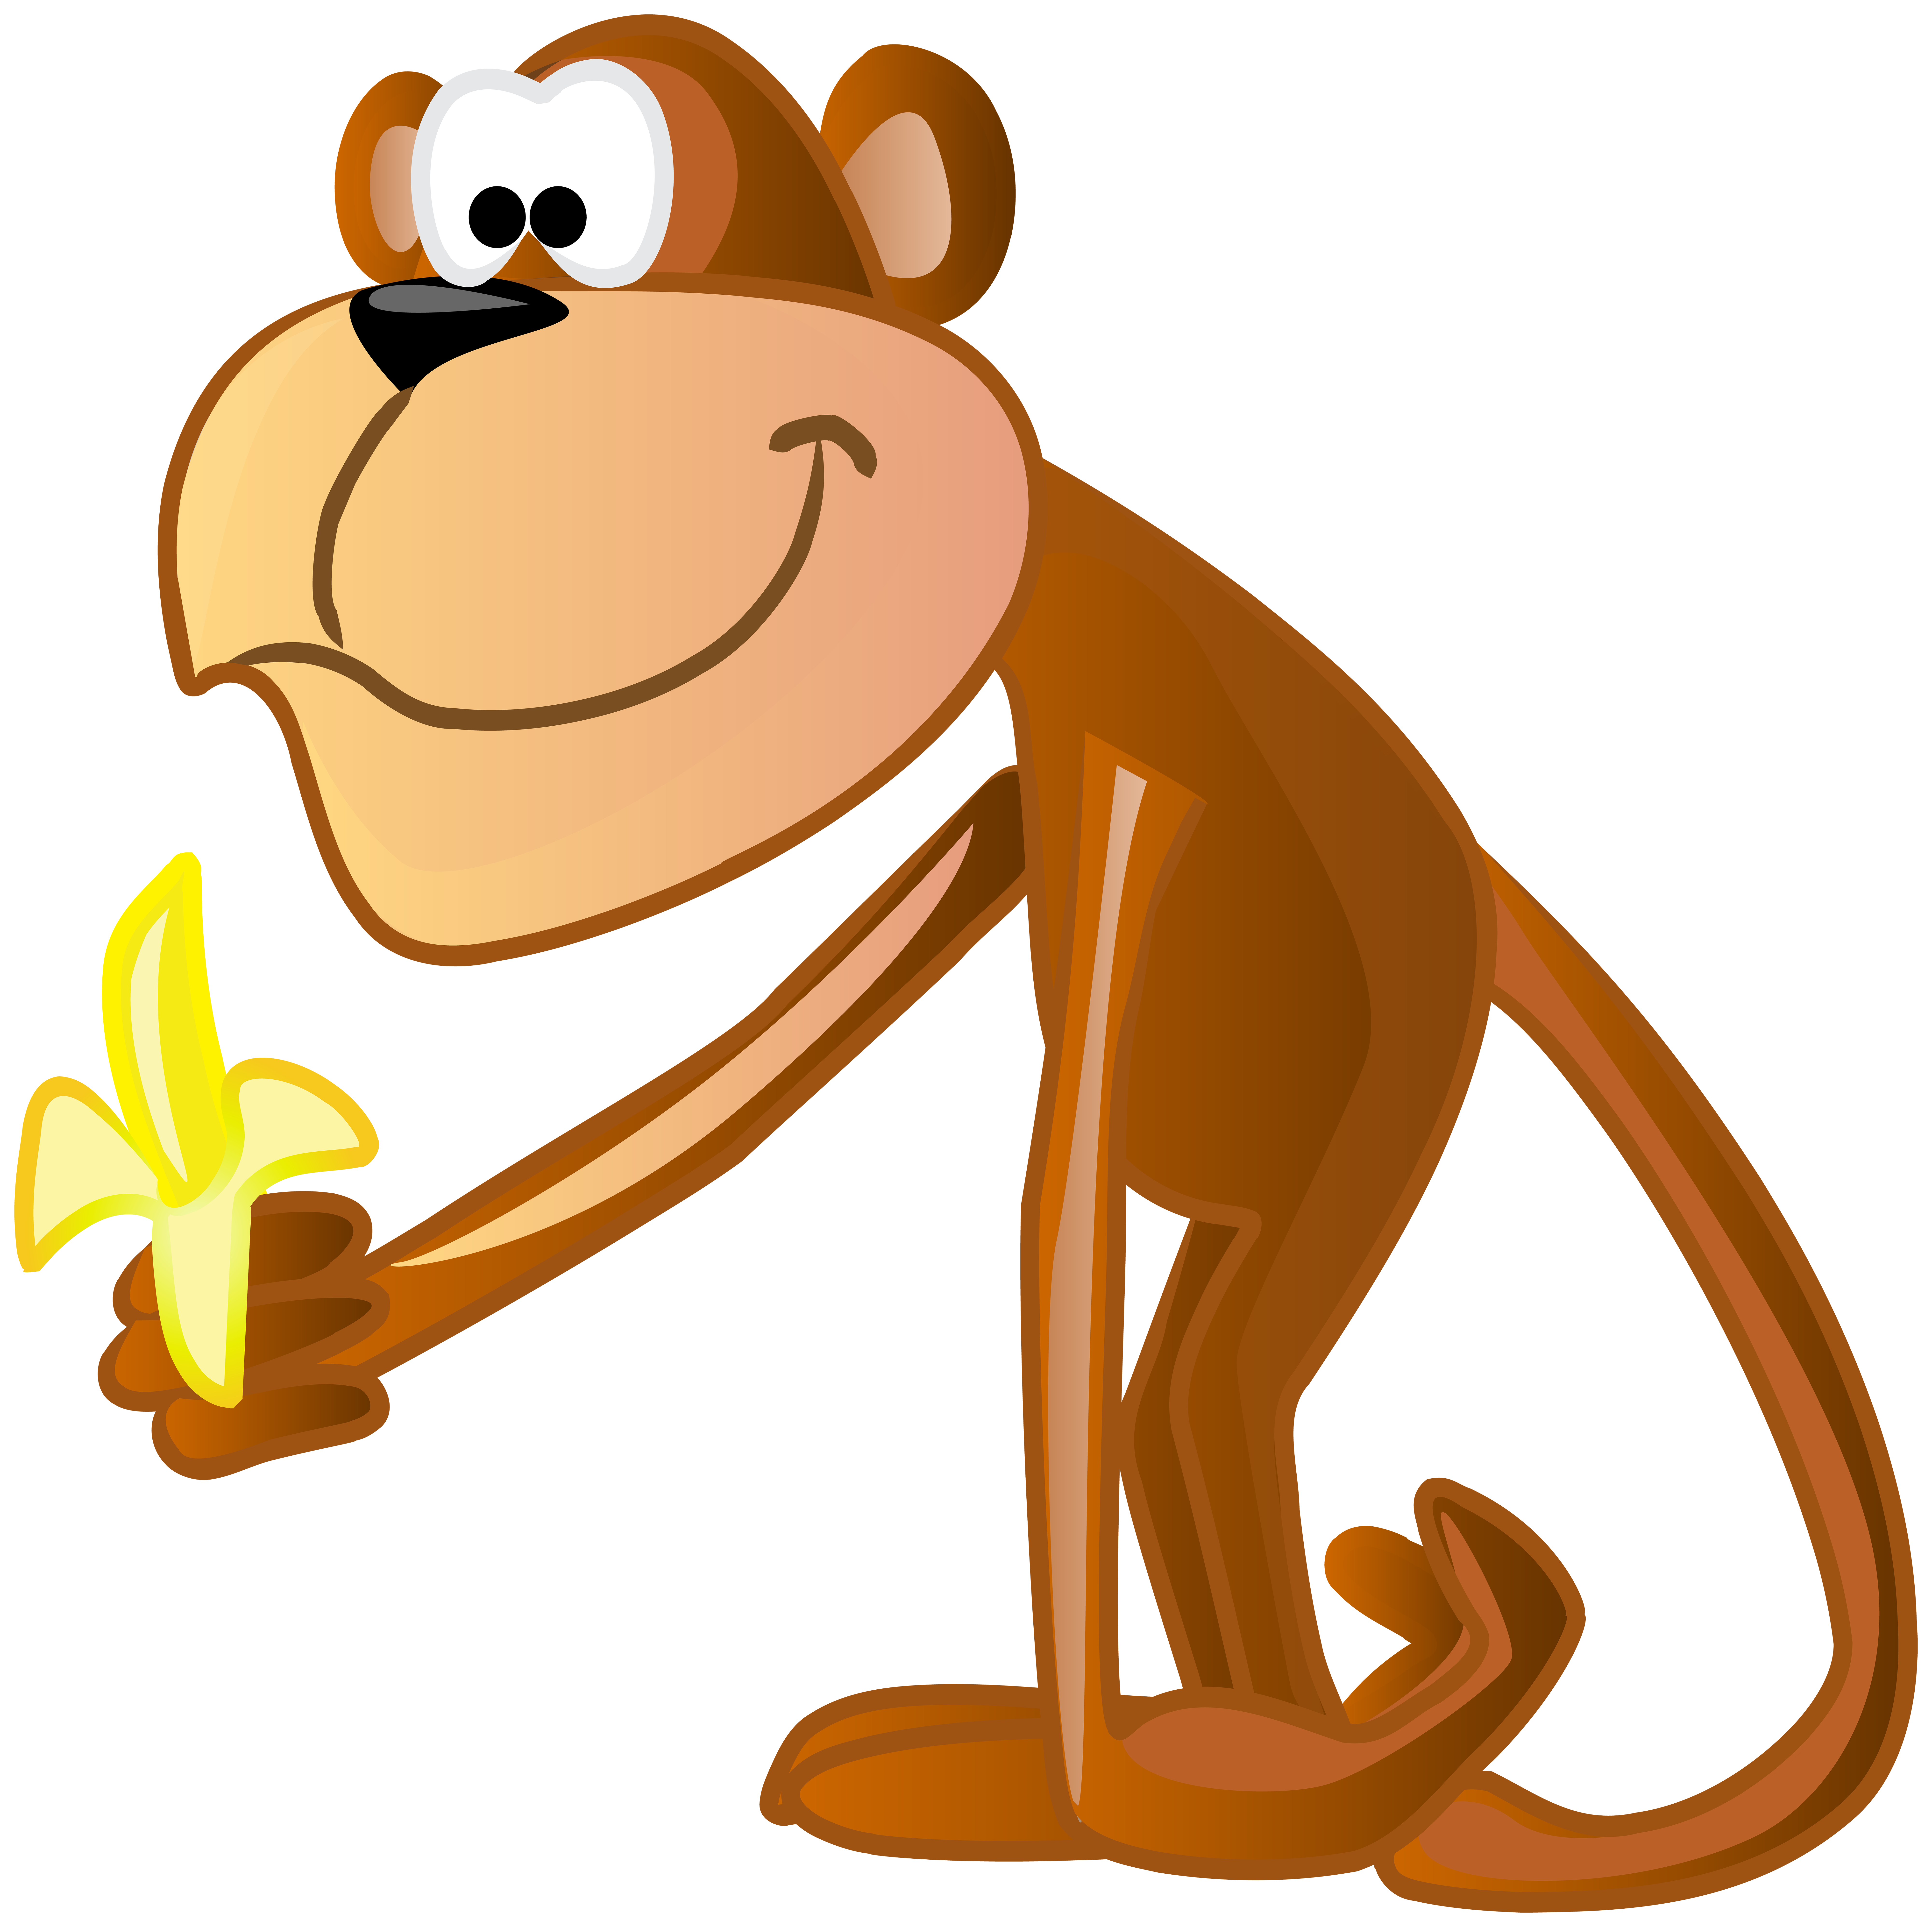 Monkey in tree clipart clipart free library Monkey Clipart For Kids at GetDrawings.com | Free for personal use ... clipart free library